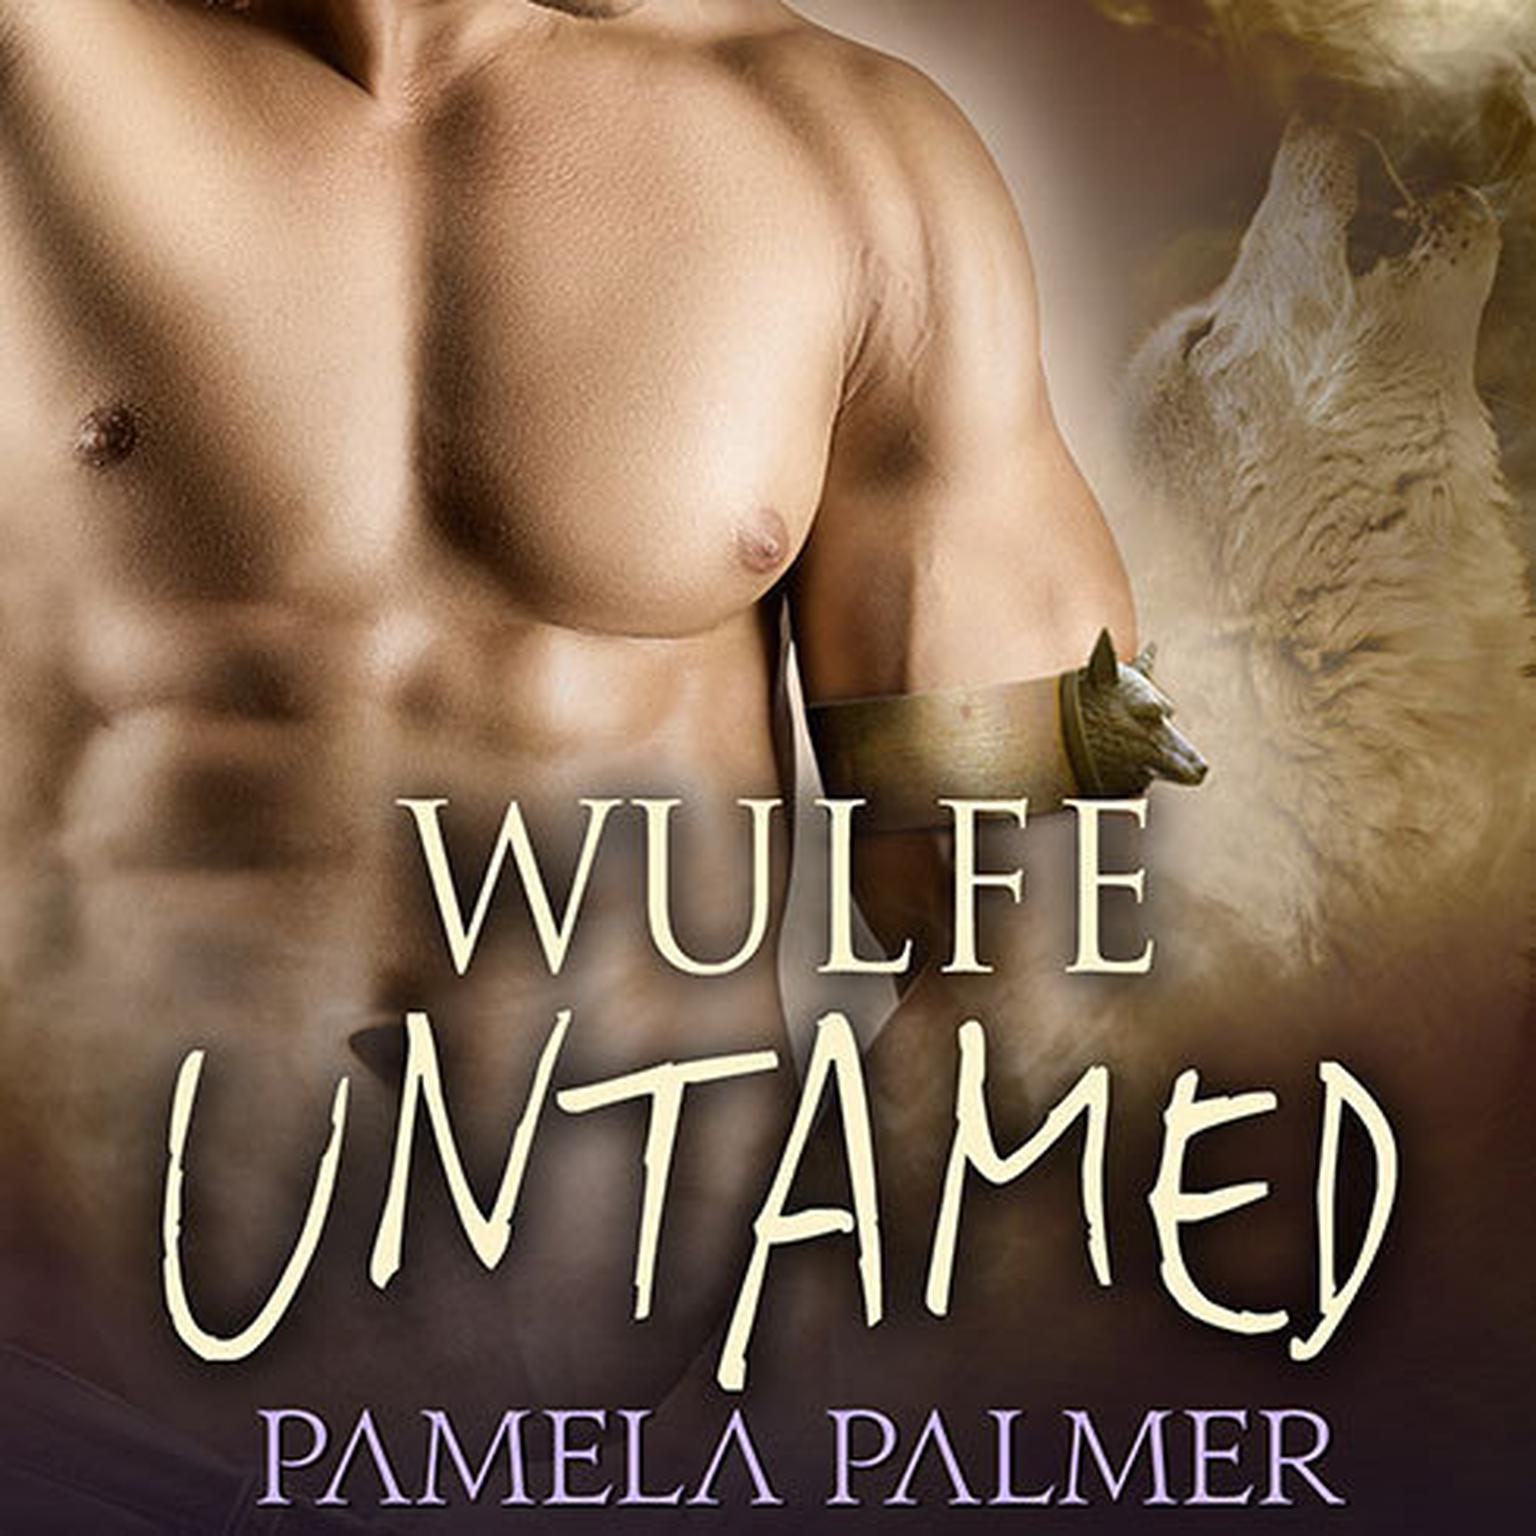 Printable Wulfe Untamed Audiobook Cover Art